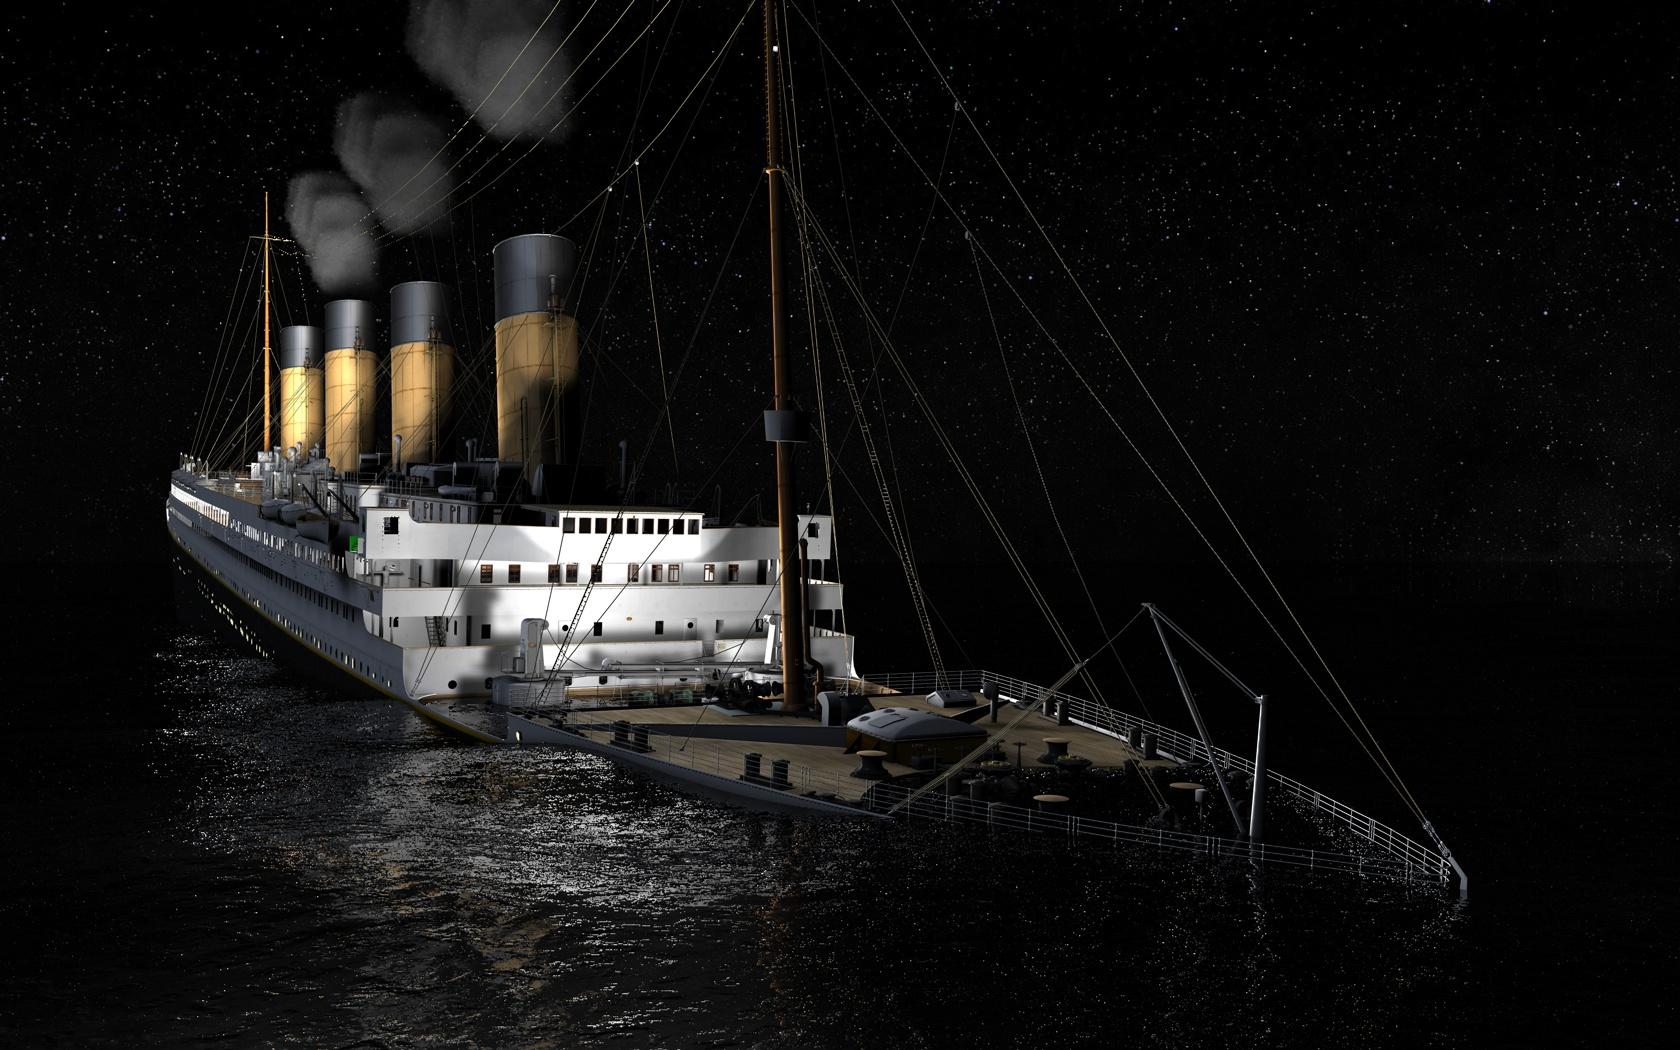 The Sinking of the Titanic: Bruce M Caplan, Logan Marshal Pictures of the titanic sinking in real life